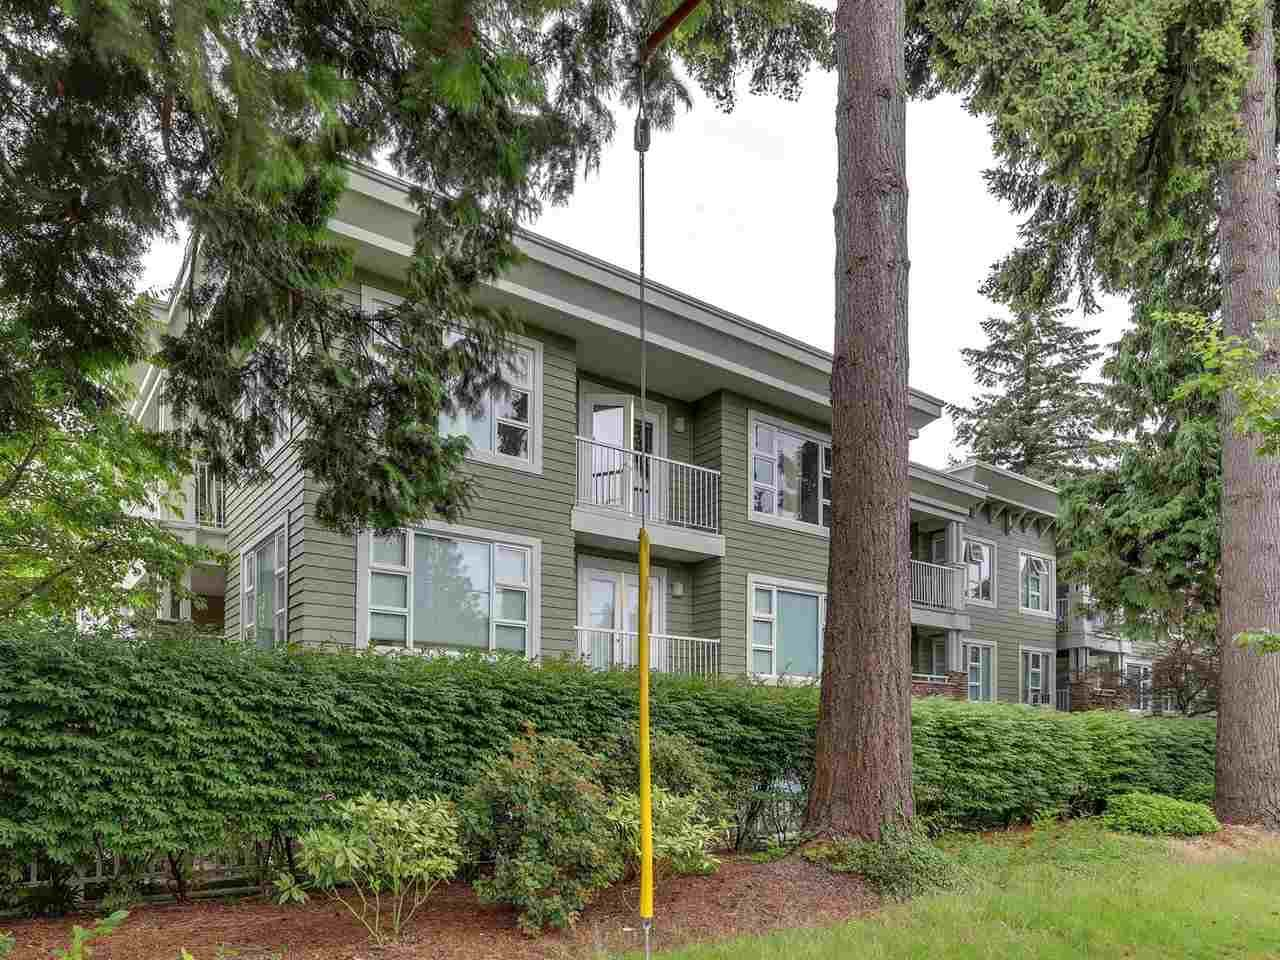 """Main Photo: 307 988 W 54TH Avenue in Vancouver: South Cambie Condo for sale in """"HAWTHORNE VILLA"""" (Vancouver West)  : MLS®# R2284275"""